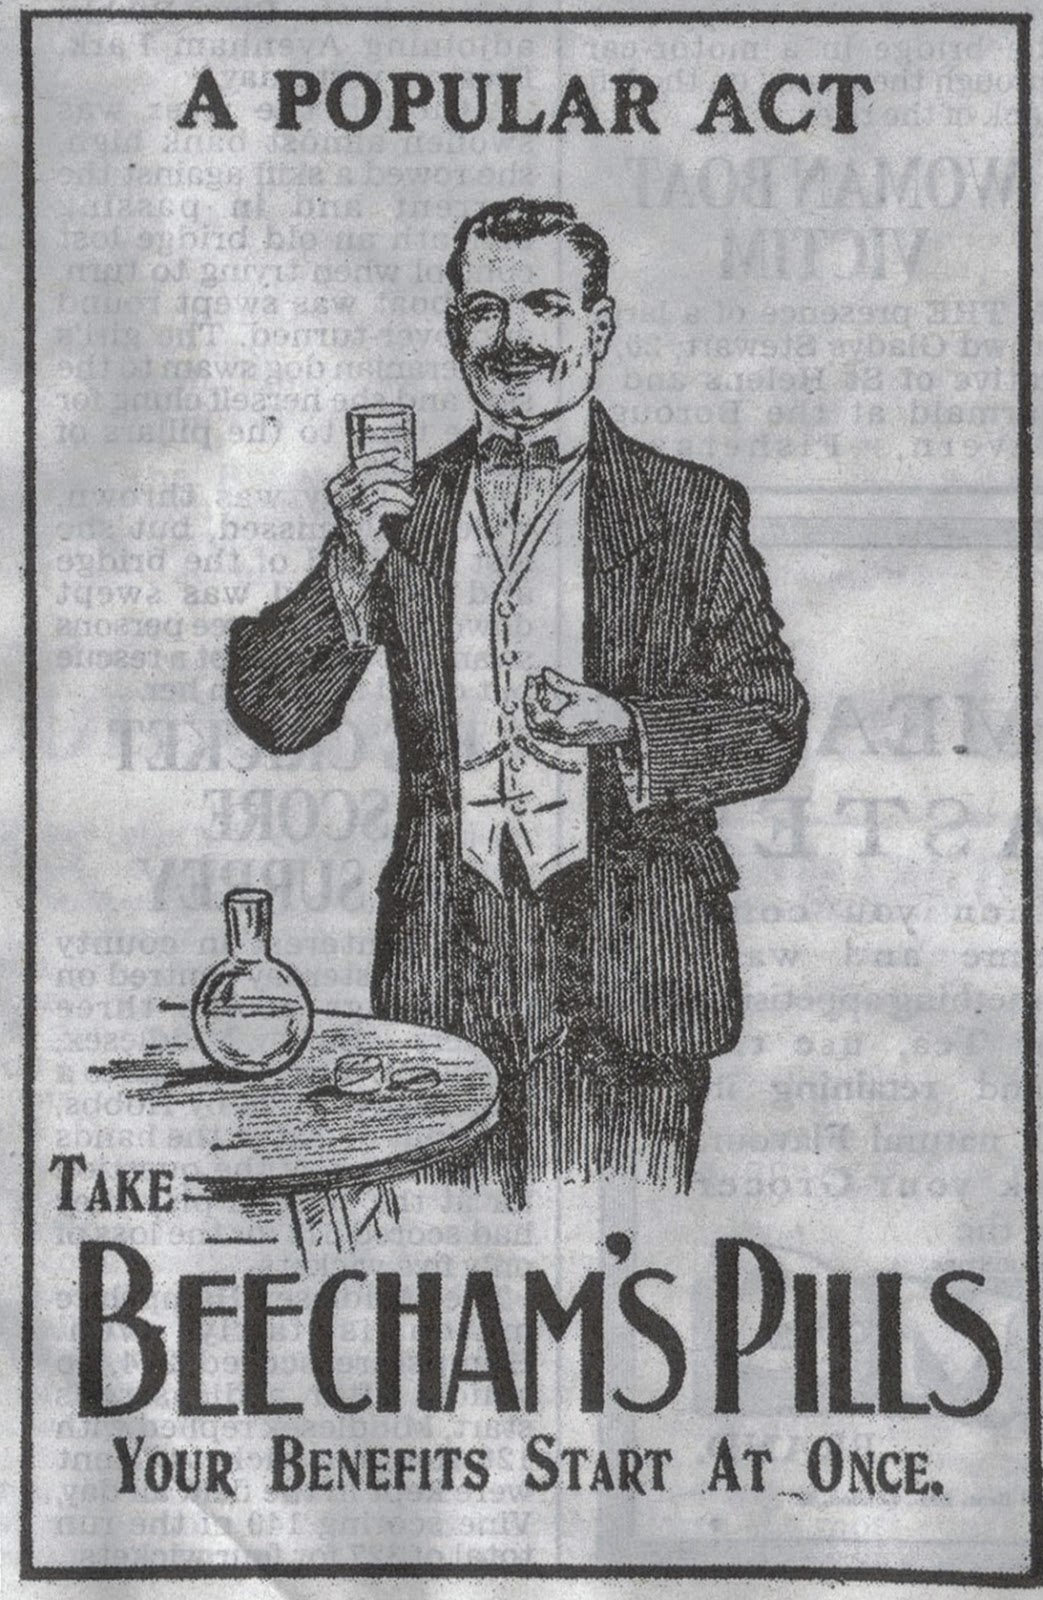 1914 advert for Beecham's Piulls